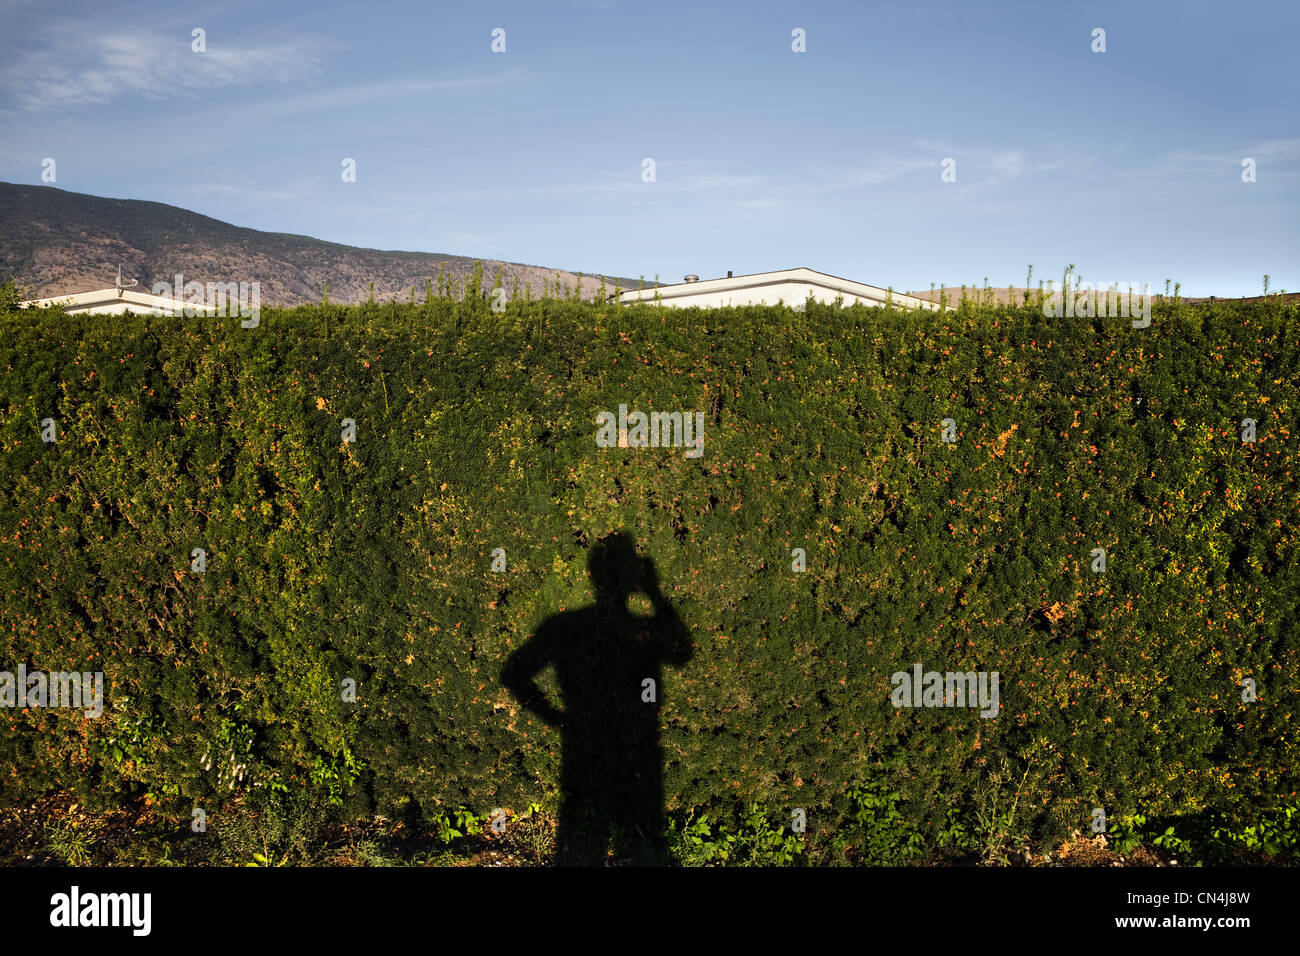 Shadow of man using cell phone on hedge - Stock Image